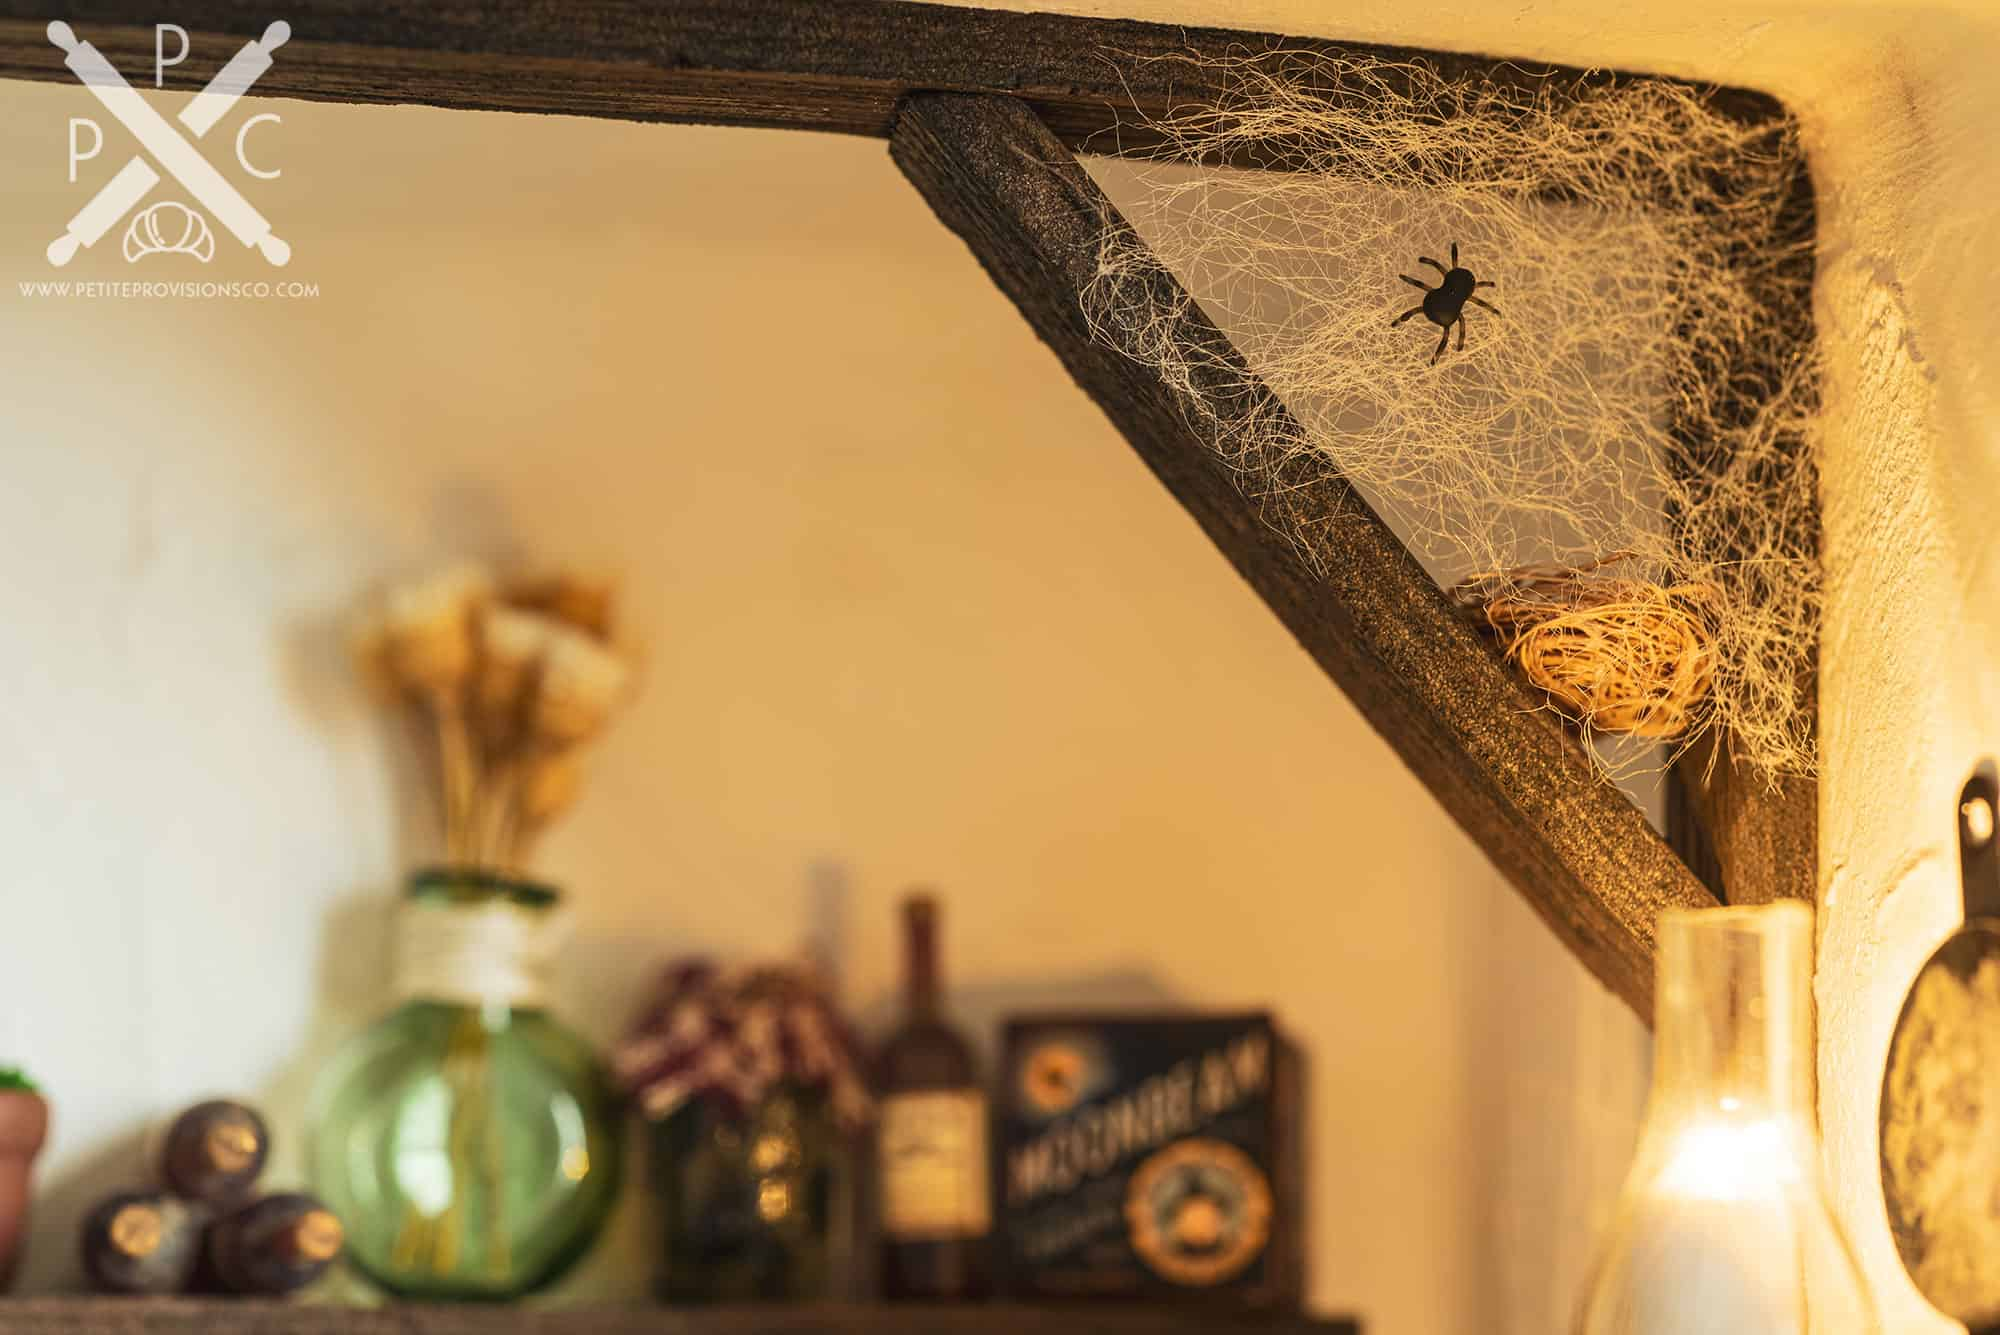 Spiderweb in Witch's Kitchen Themed Roombox - Halloween at the Hag's Hearth - HBSMiniatures Halloween Challenge 2020